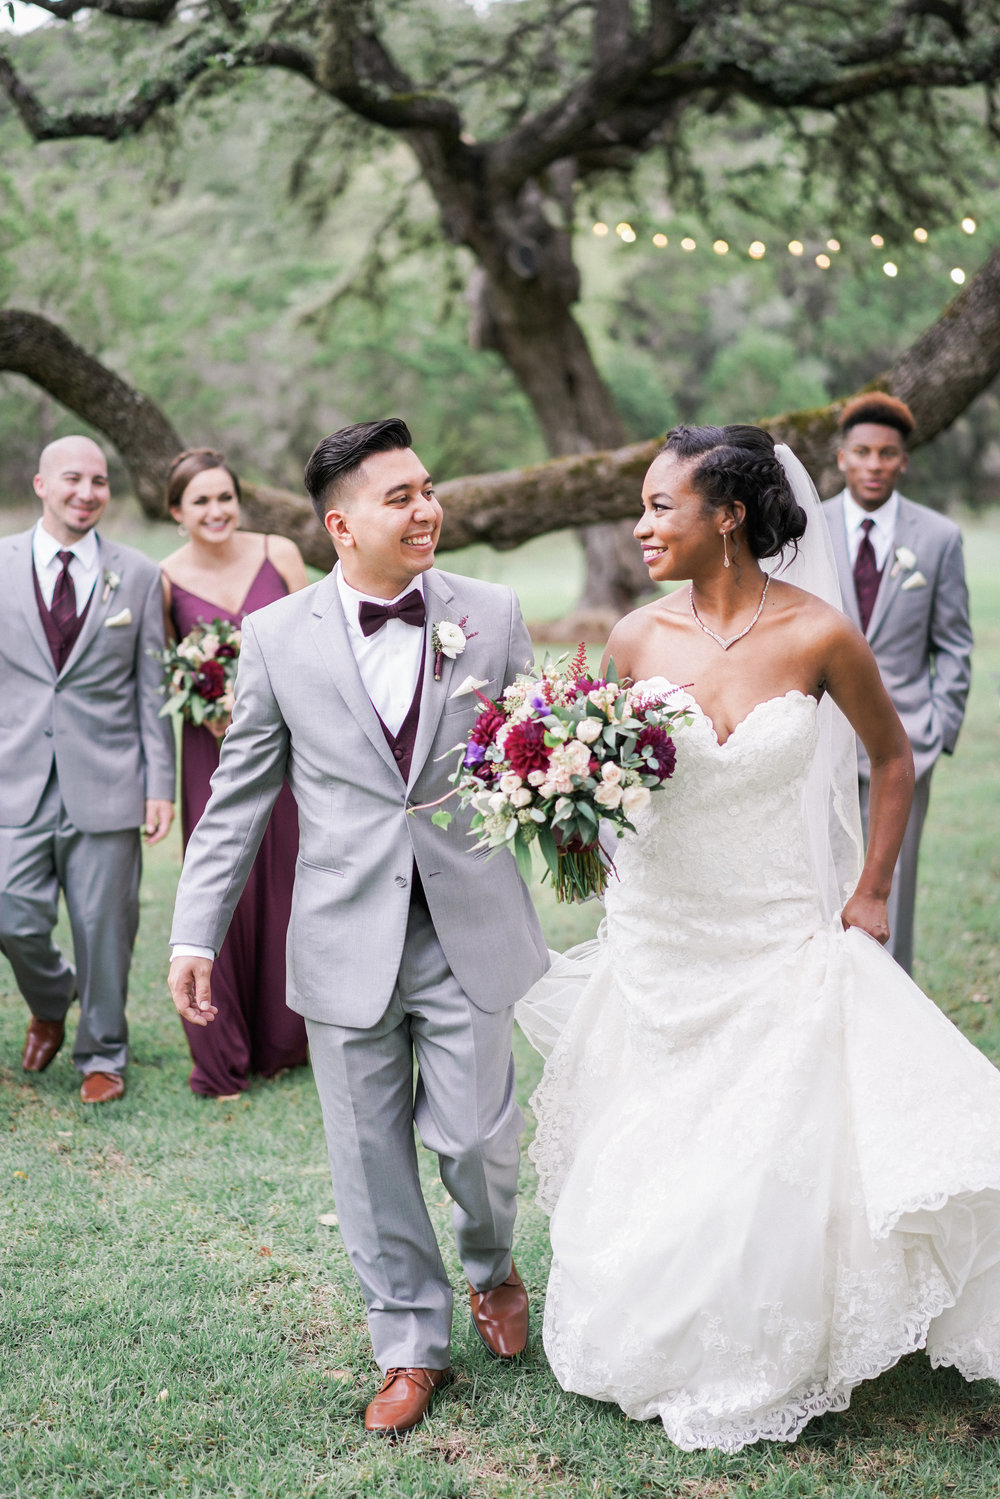 Ivory Oak Wedding | As seen in Style Me Pretty | Ivory Oak Wedding Photos